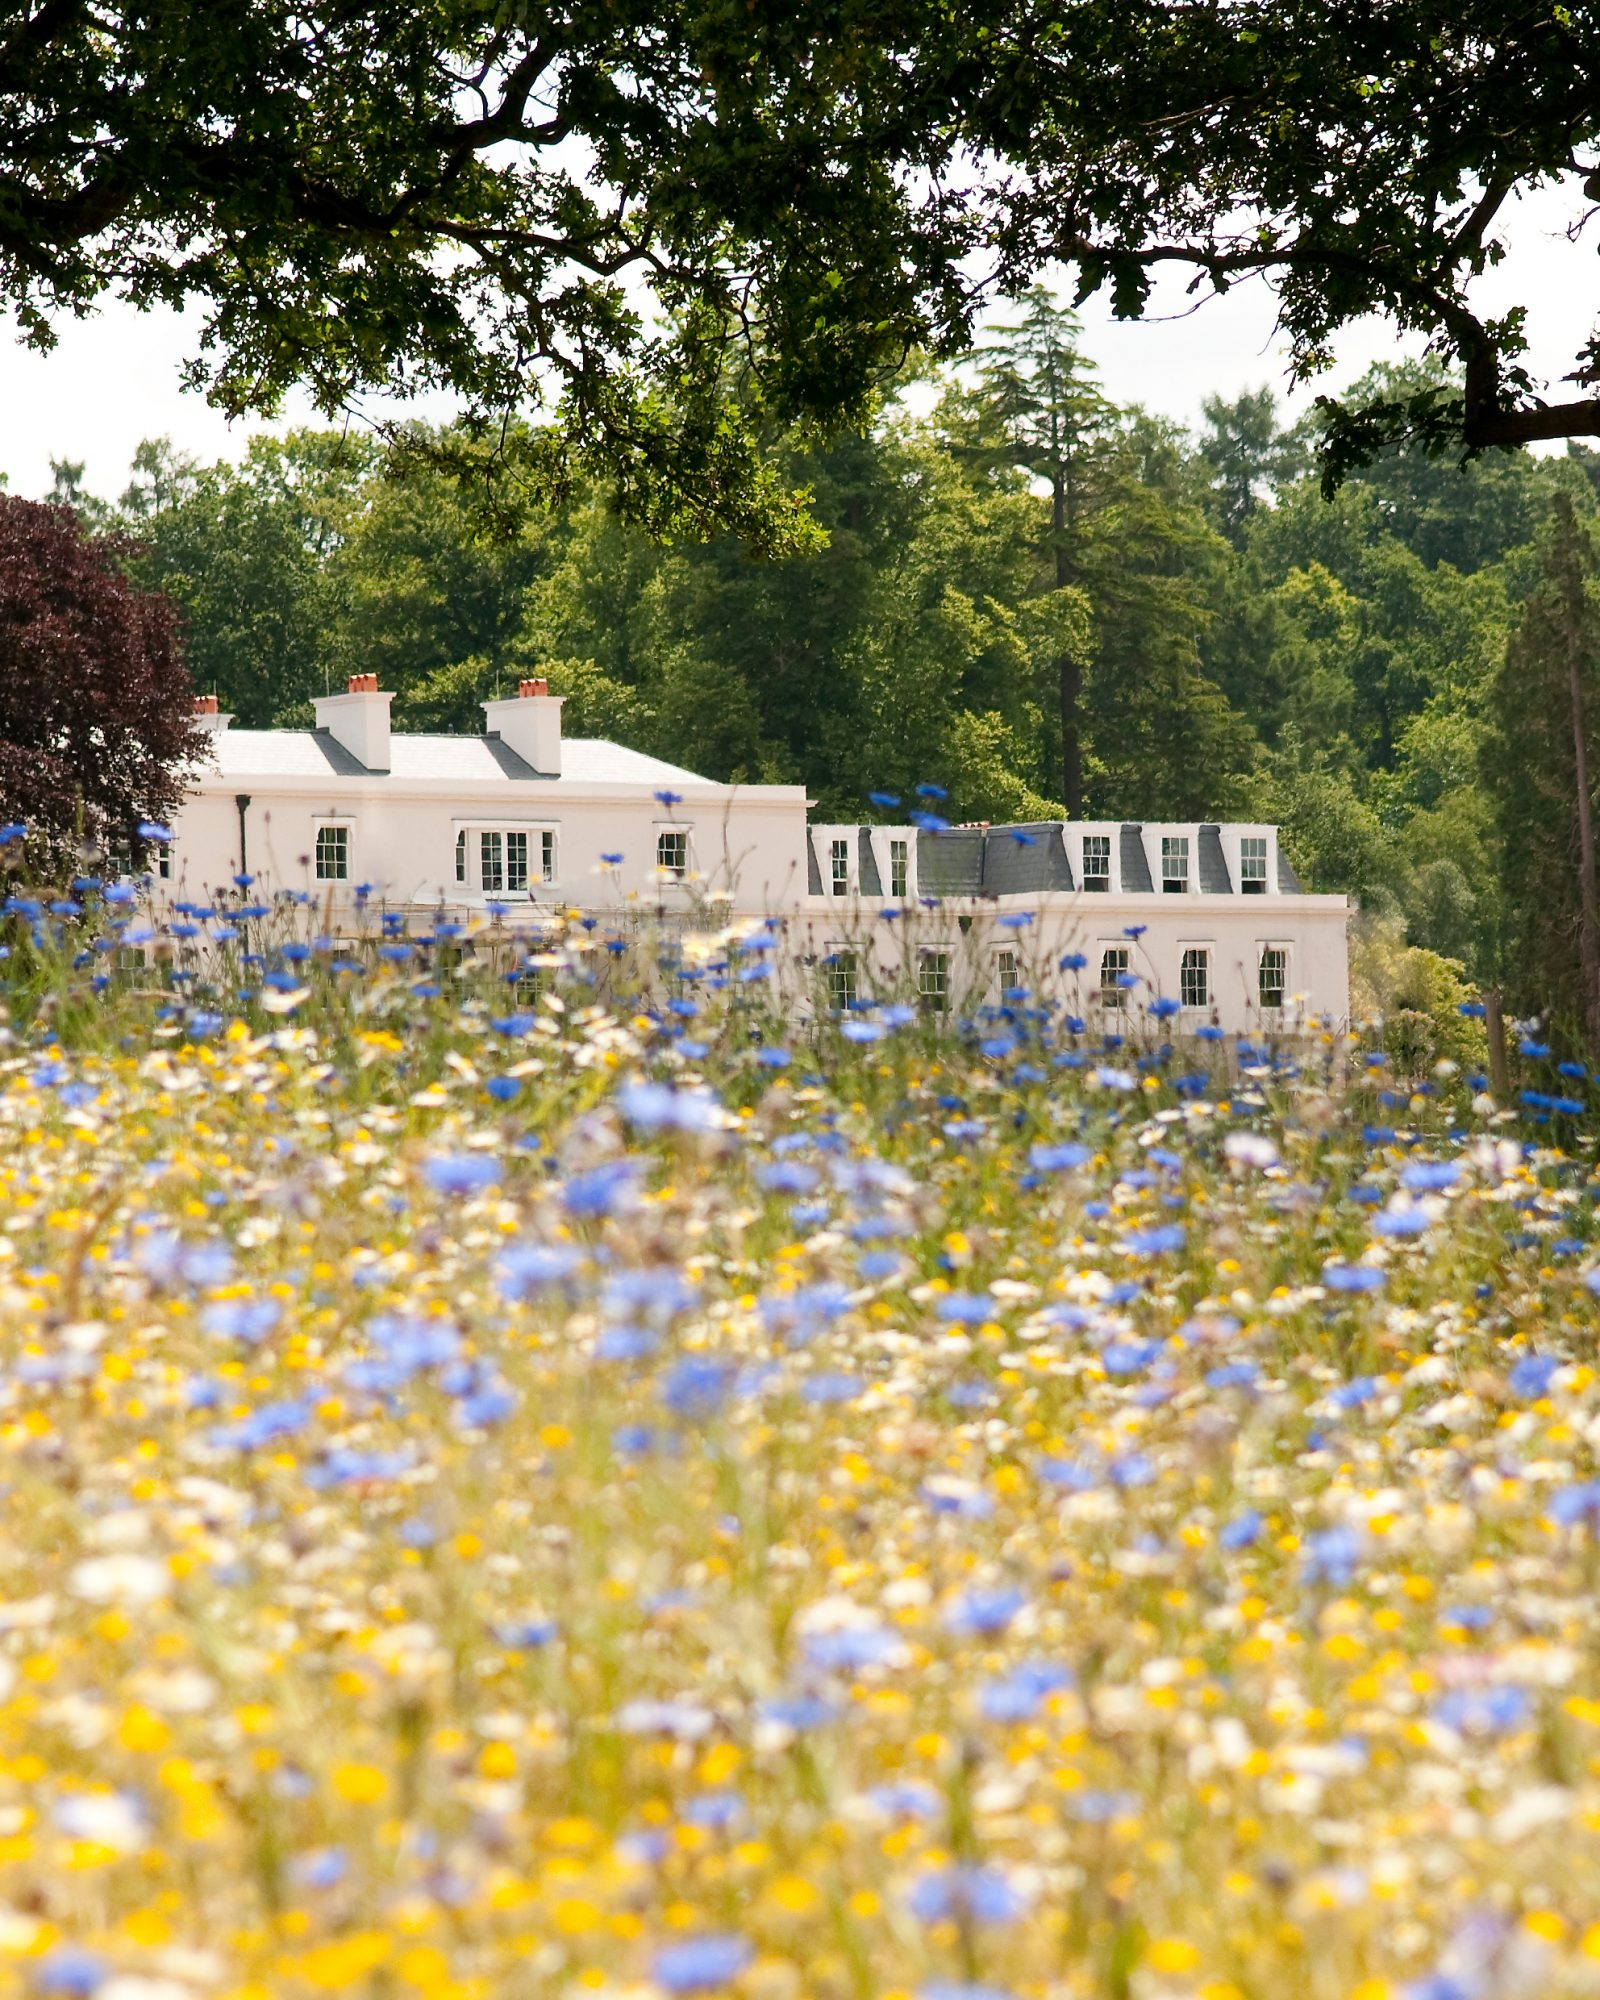 mr-mrs-smith-travel-hotels-wd0413-coworth-park-meadow-exterior.jpg